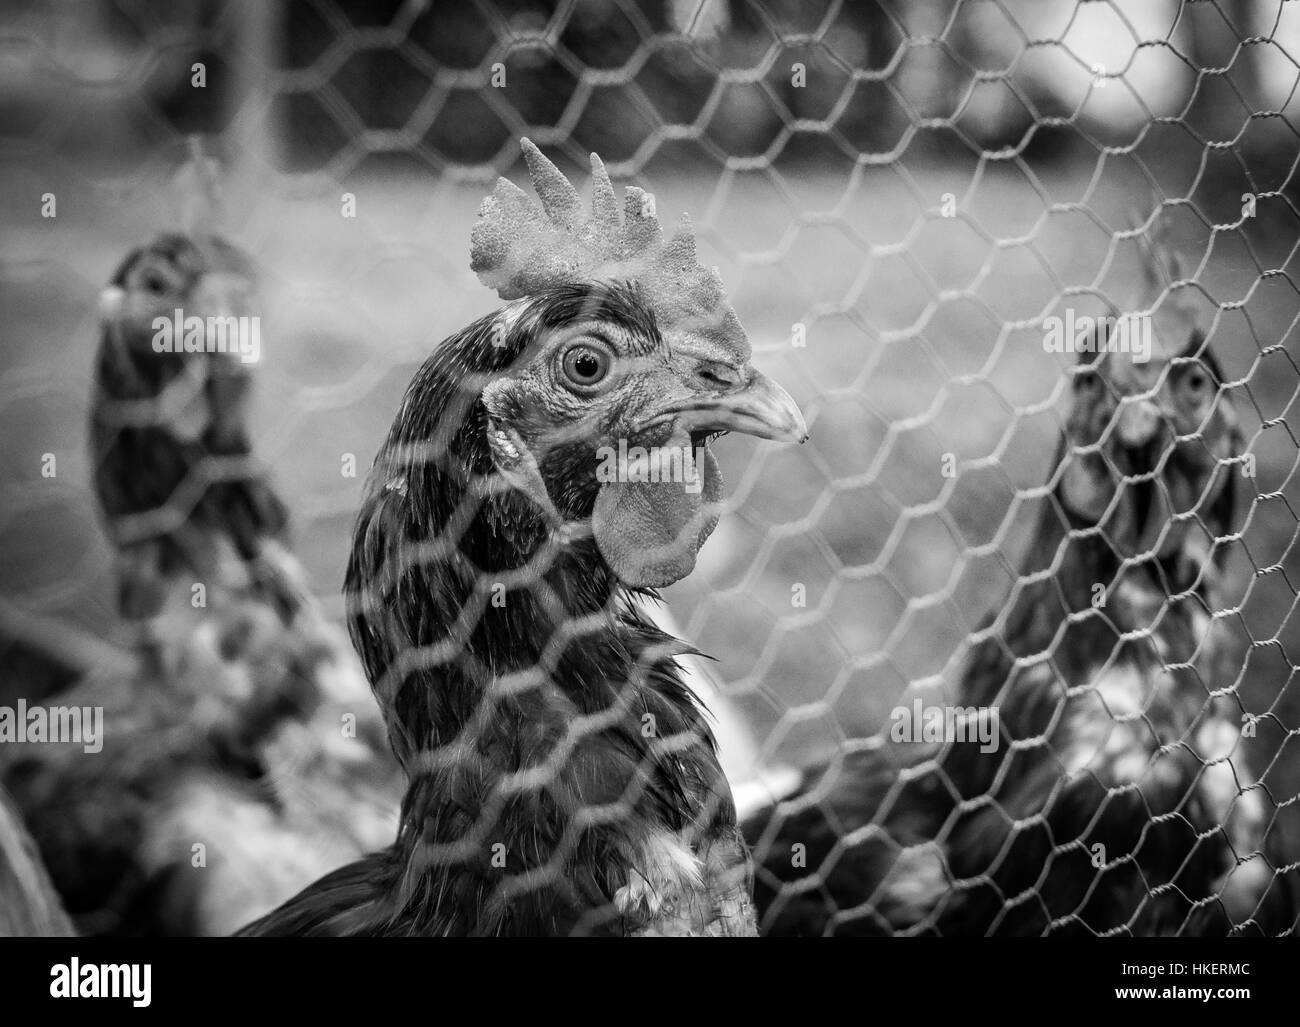 Chicken looking through wire fence - Stock Image